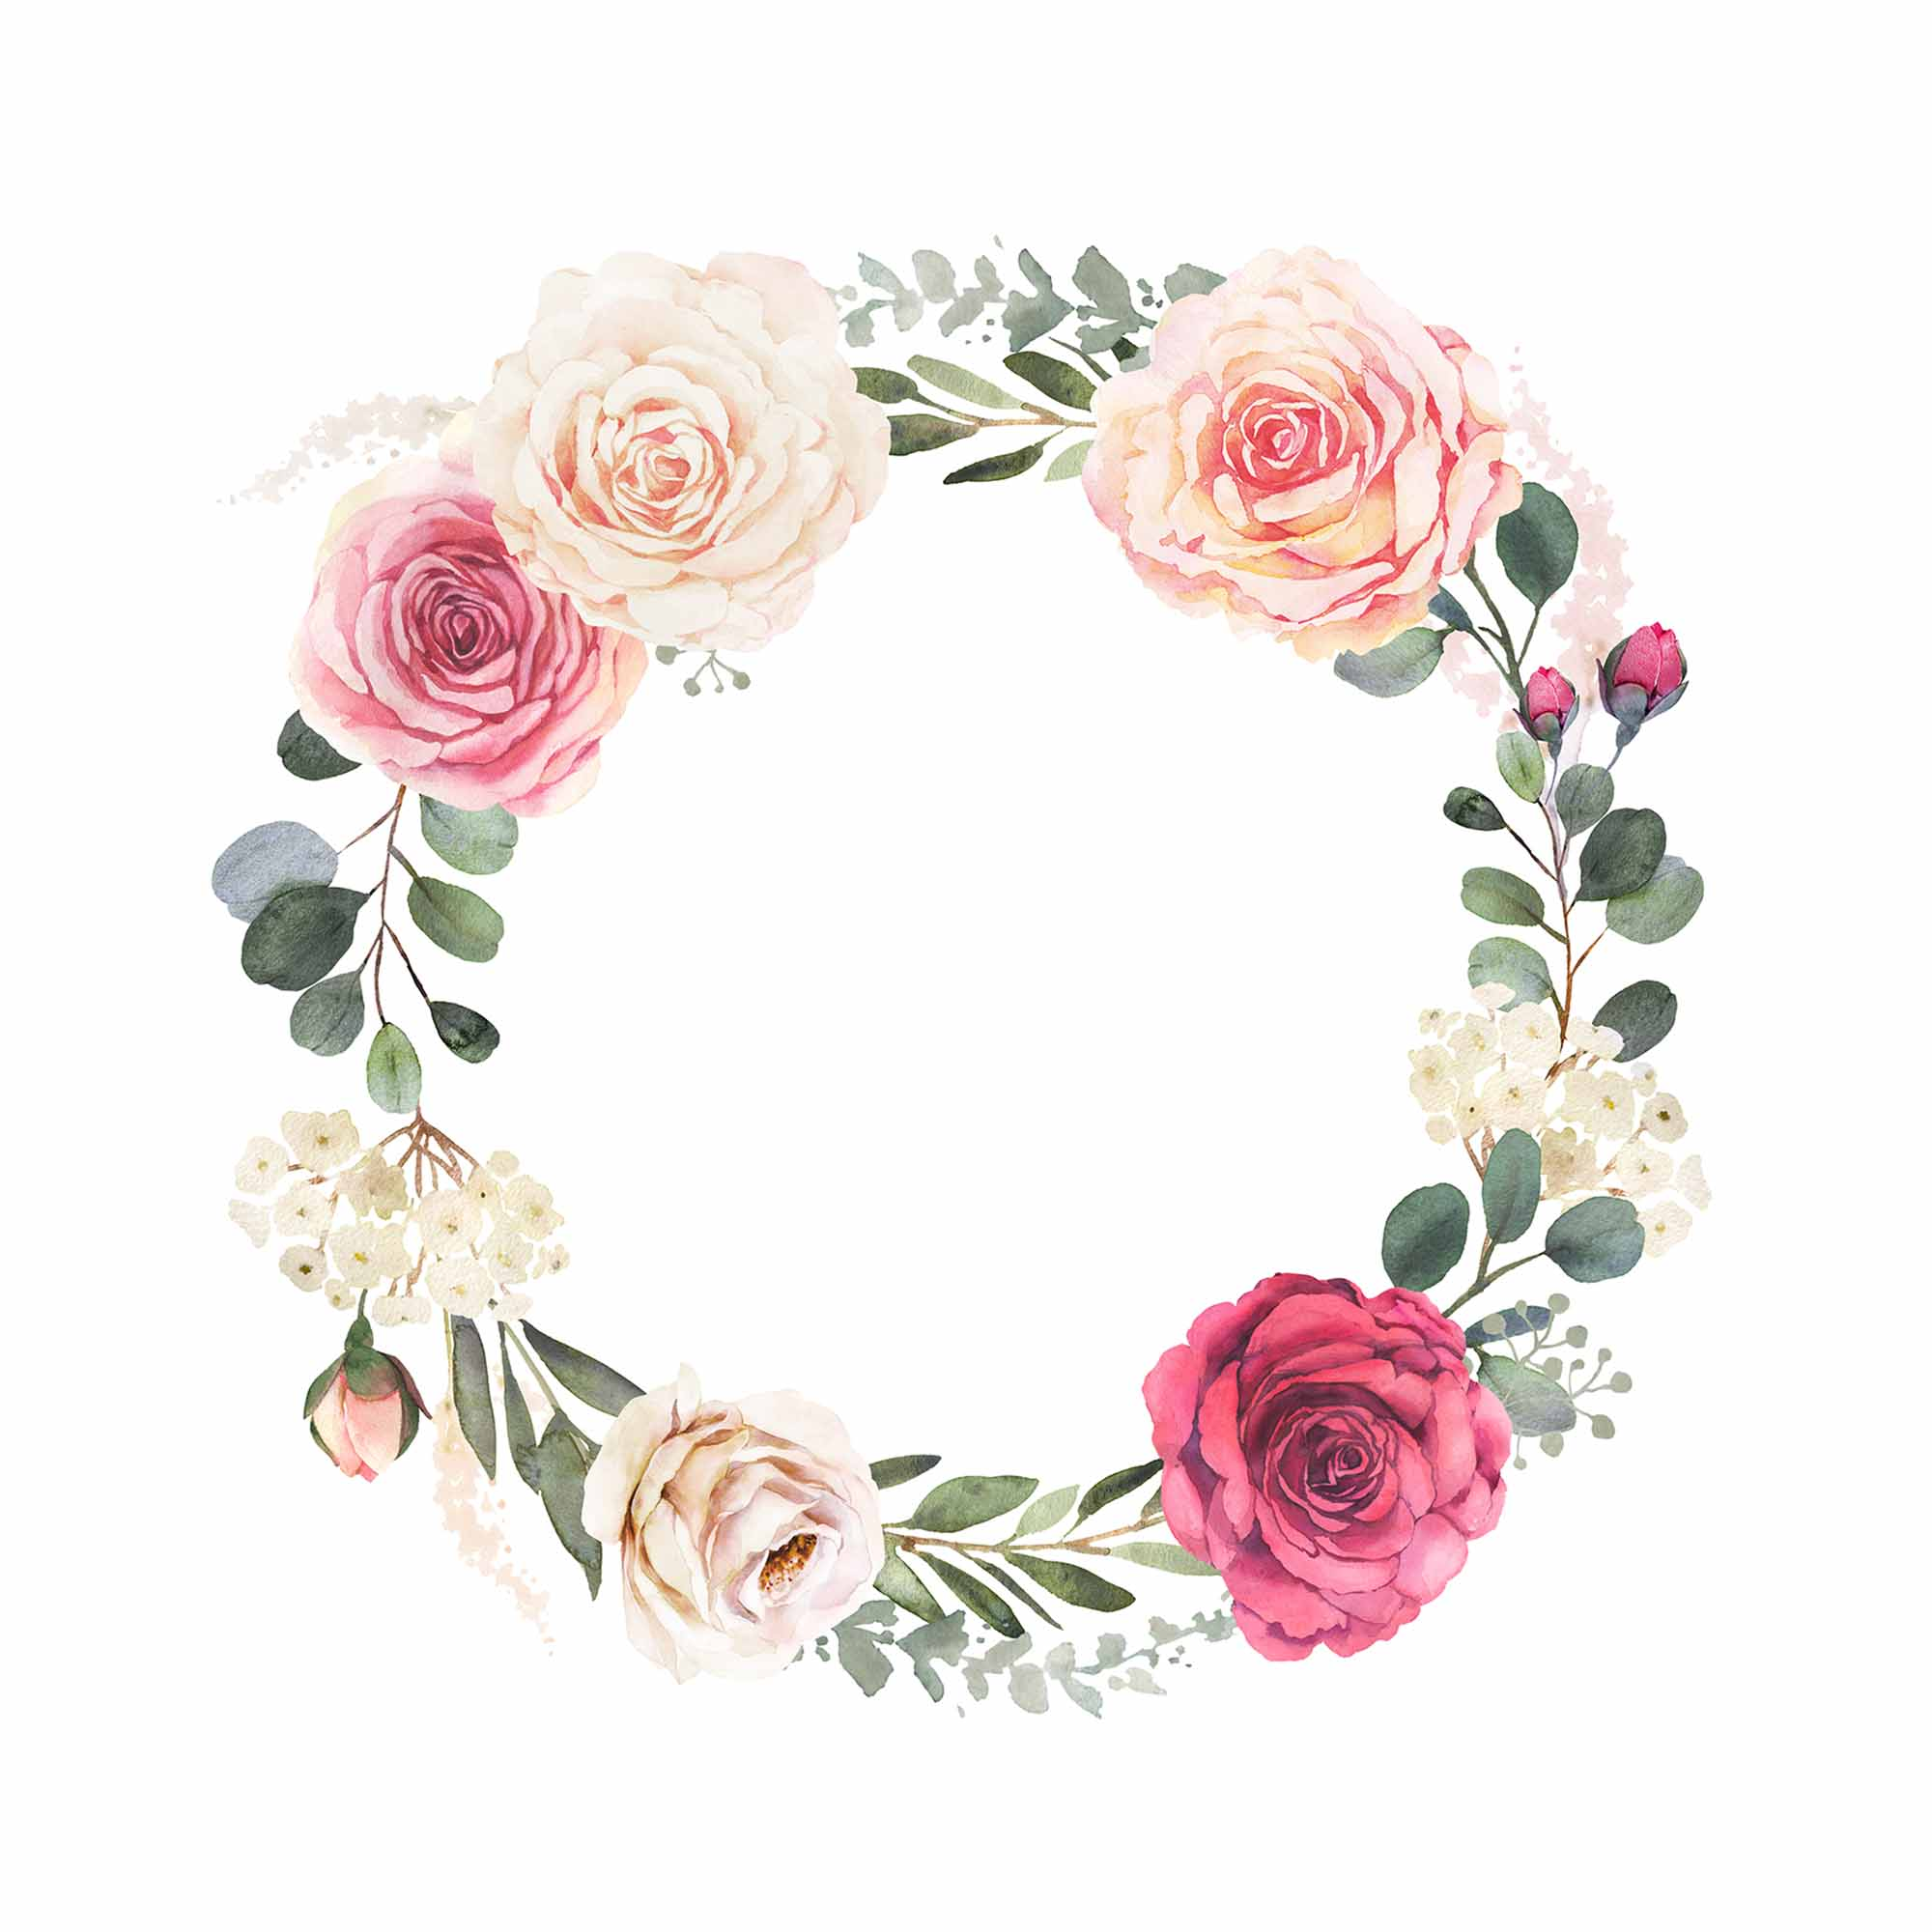 Watercolor Floral Wreath with Roses